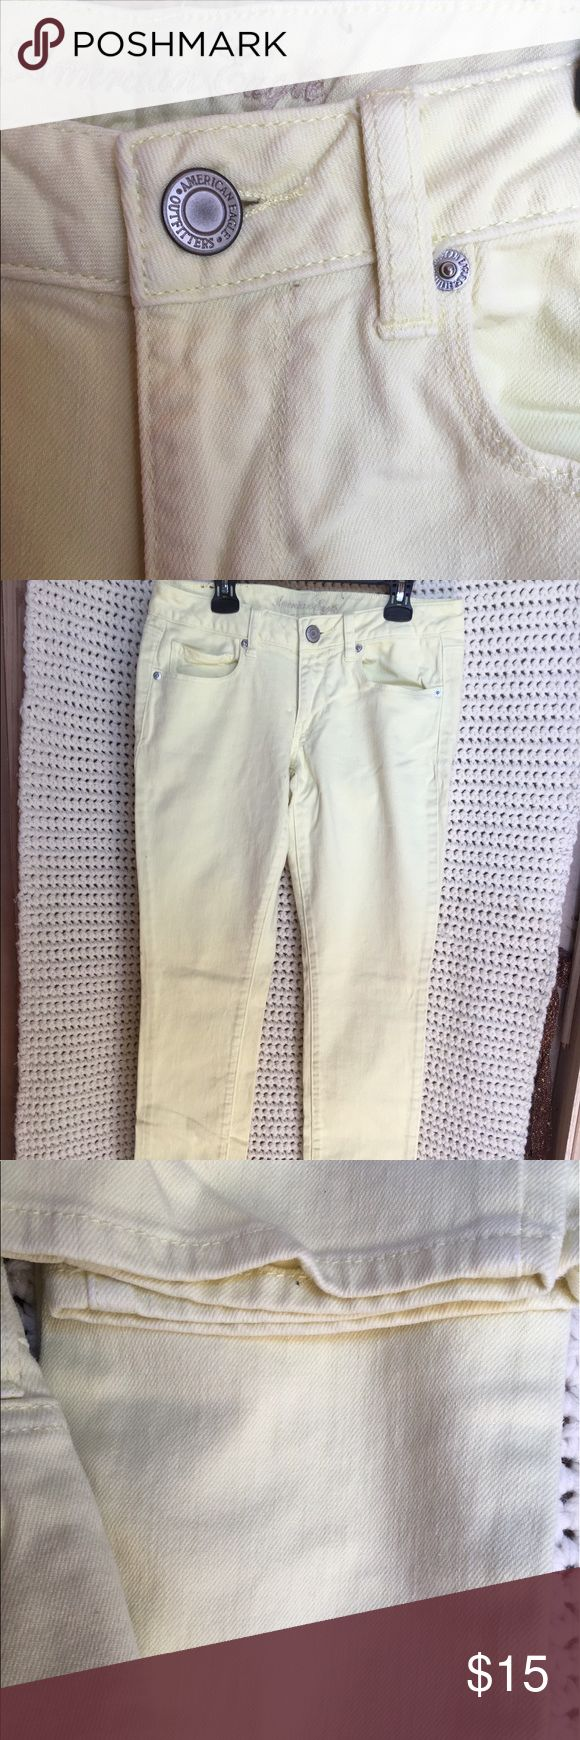 AE Outfitter Jeans Pastel yellow, lightly worn skinny jeans American Eagle Outfitters Jeans Skinny